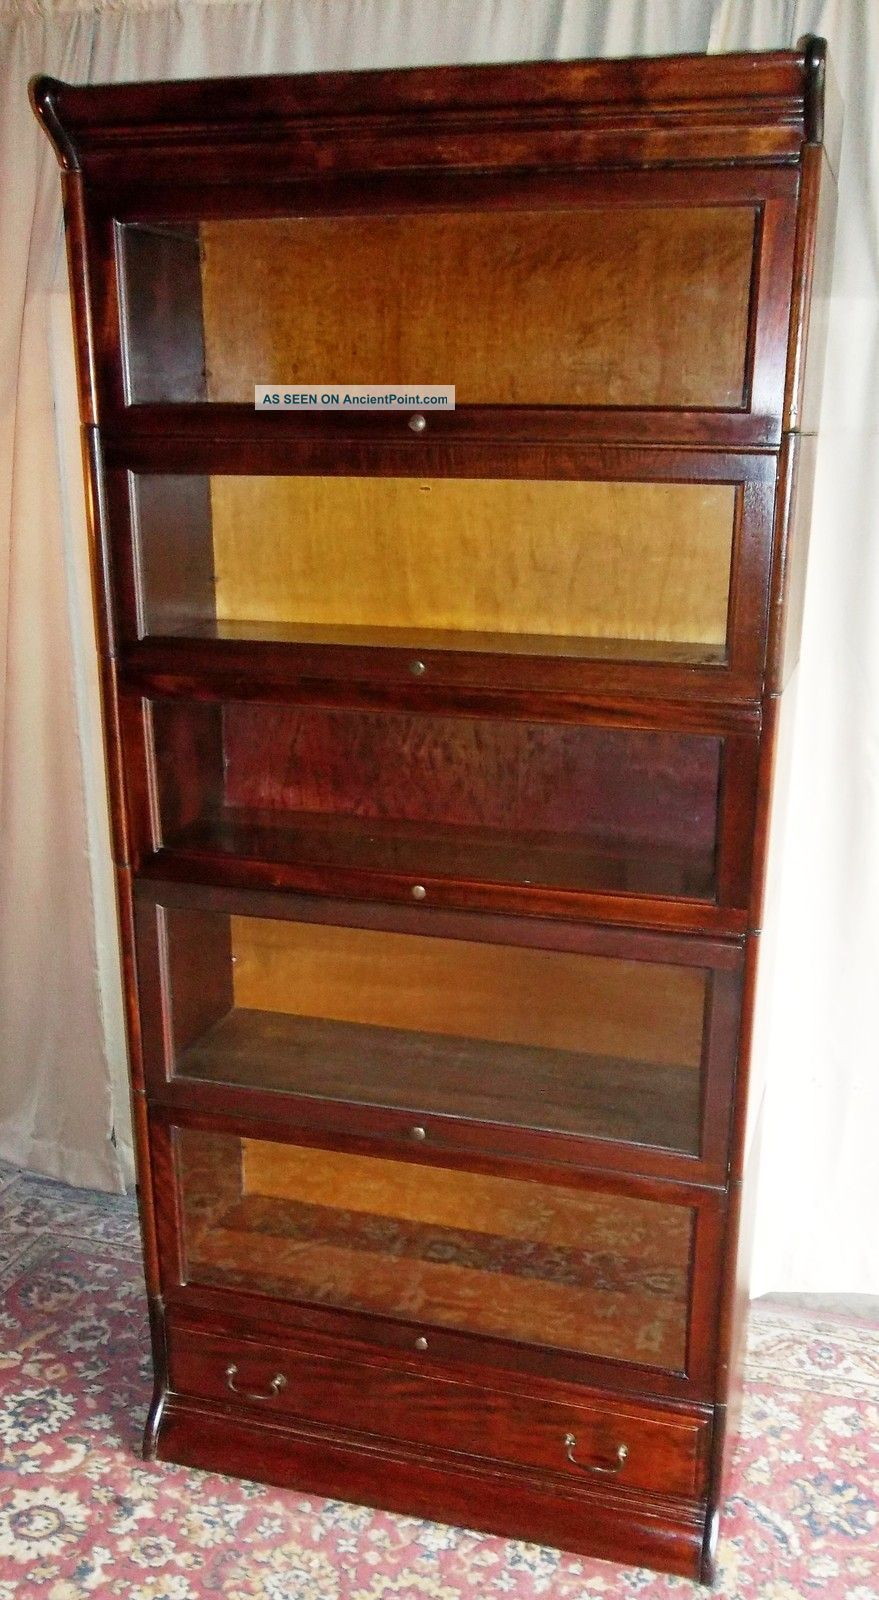 Image for Antique Bookcases With Glass Doors - Image For Antique Bookcases With Glass Doors Wooden Bookshelves